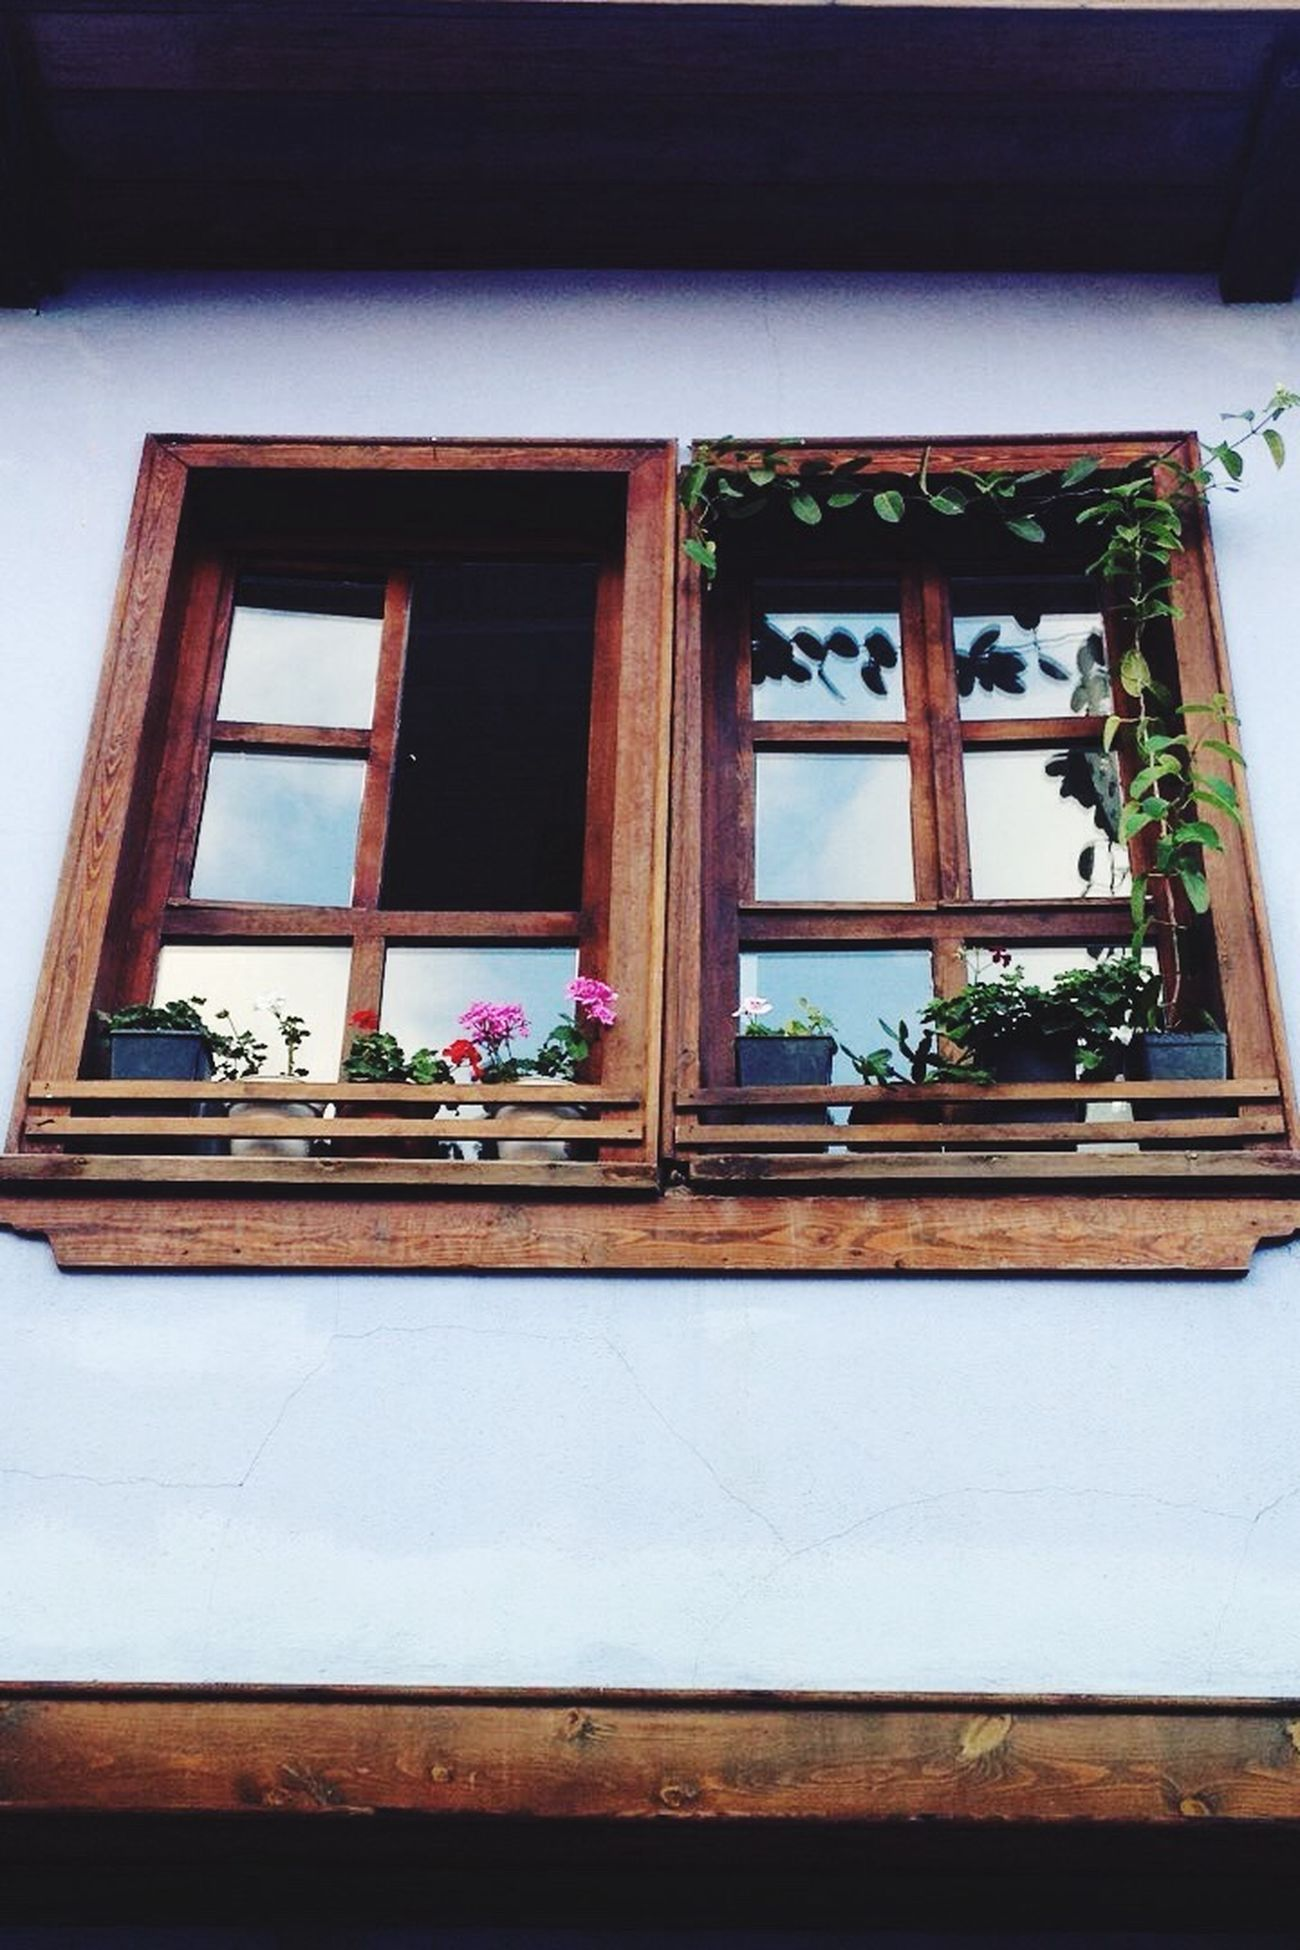 Bursa / Turkey Window Flowers Happiness Outdoors Bestshot Bestseller  Pencere Picoftheday Bestoftheday